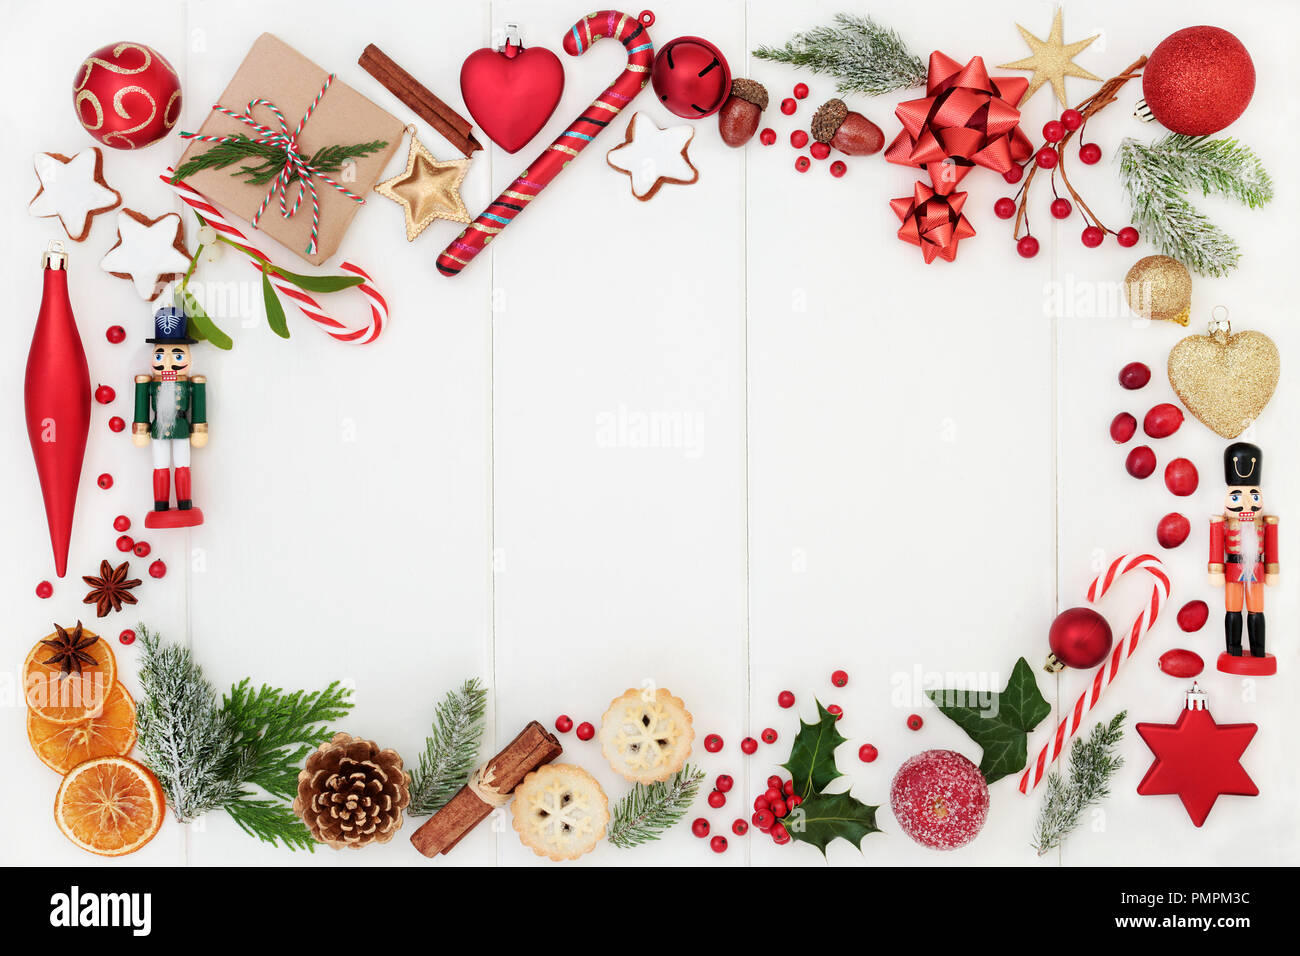 Christmas background border composition with traditional symbols of bauble decorations, candy canes, mince pies, fruit, spices, winter flora and gift  - Stock Image